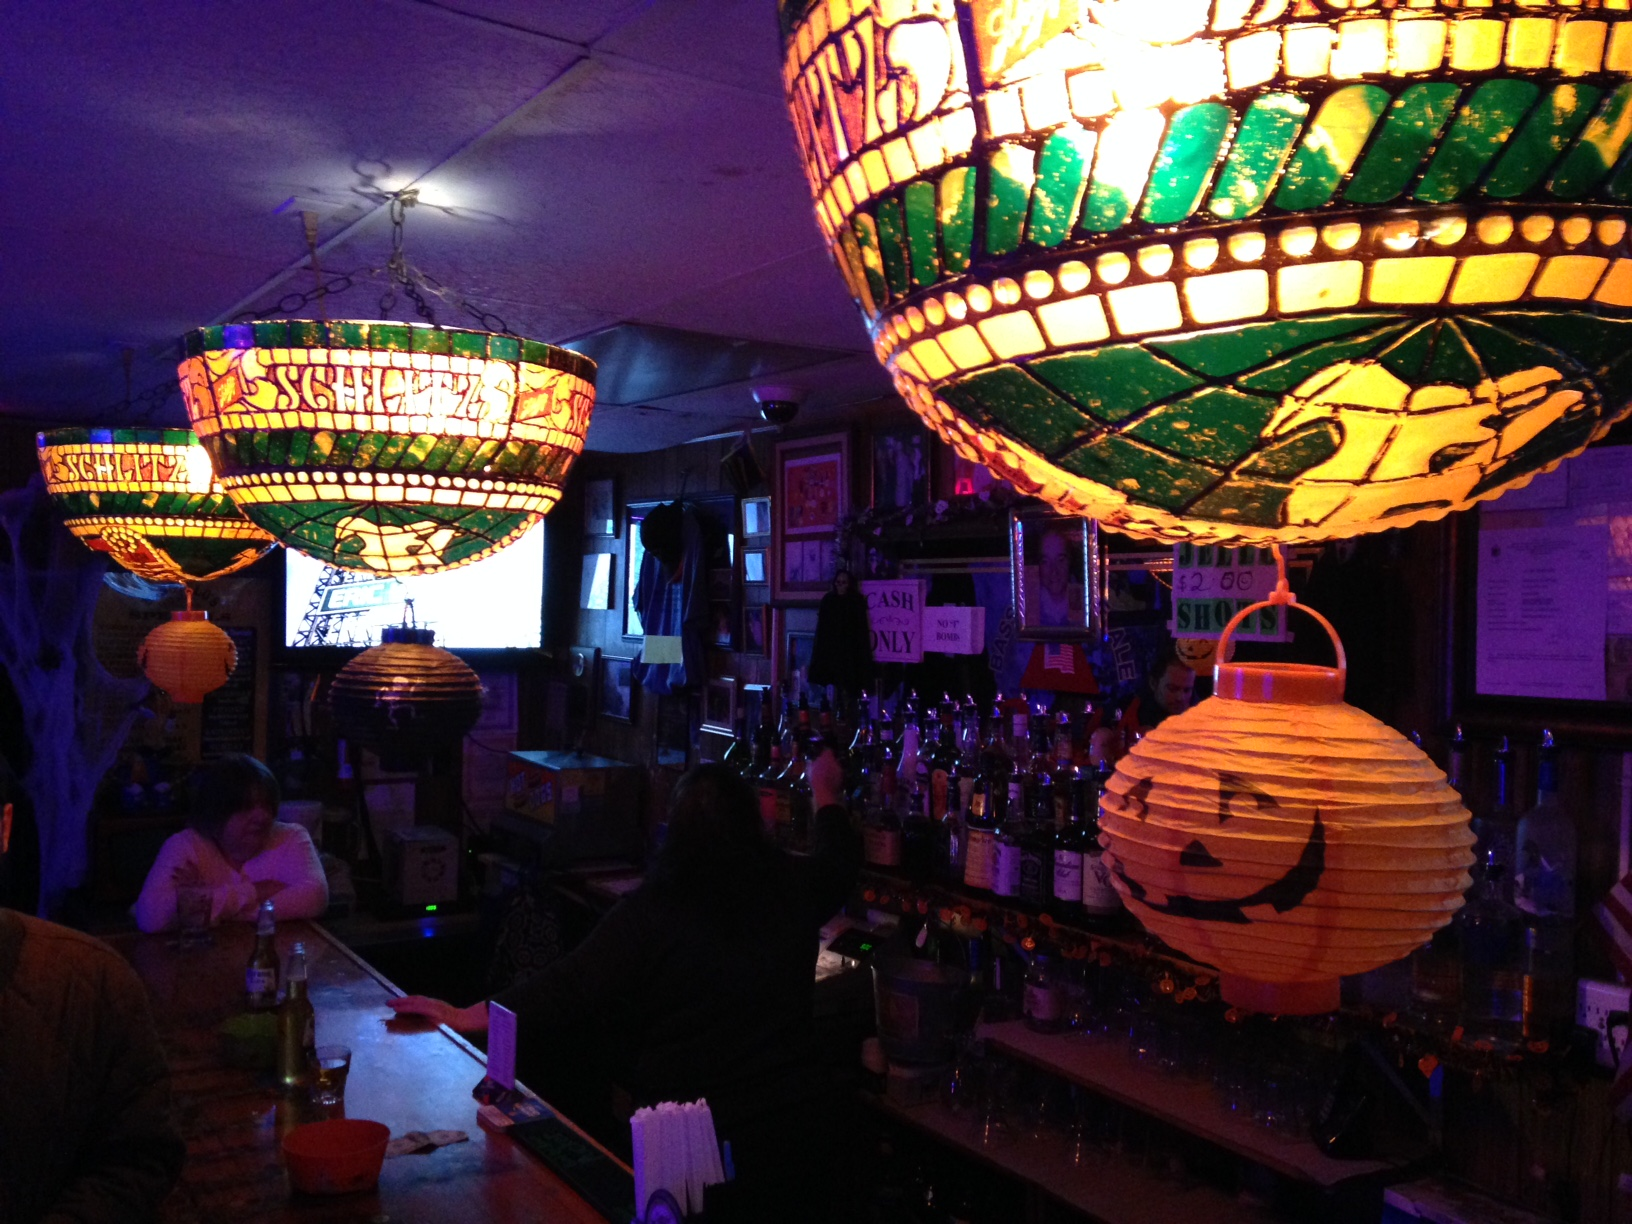 Sangillo's decorated festively for Halloween.